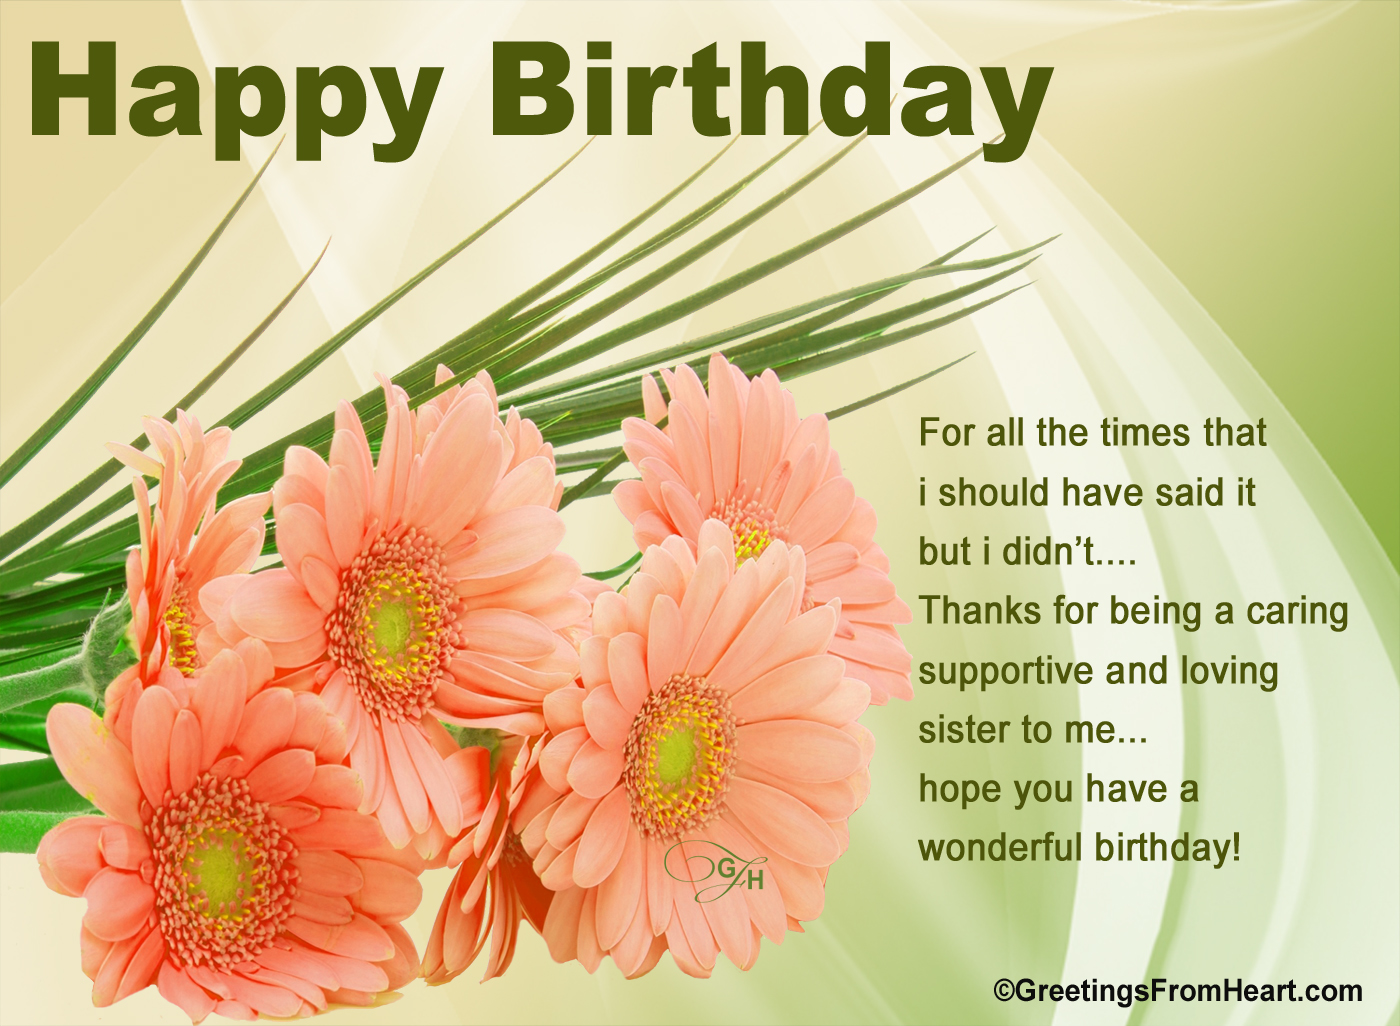 Happy birthday greetings happy birthday greeting for sister birthday greetings for sister m4hsunfo